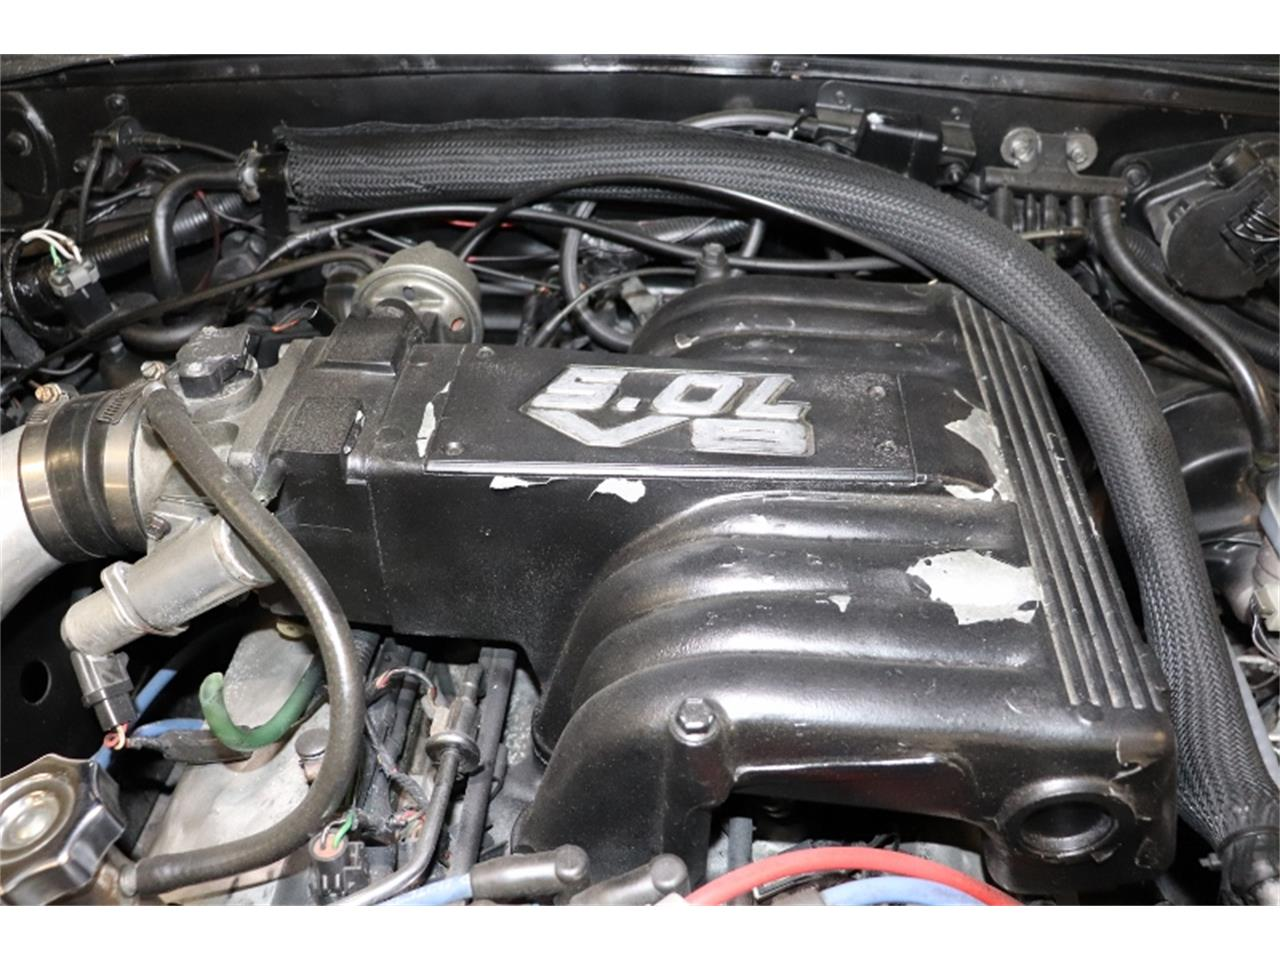 1989 Ford Mustang (CC-1411396) for sale in Lillington, North Carolina